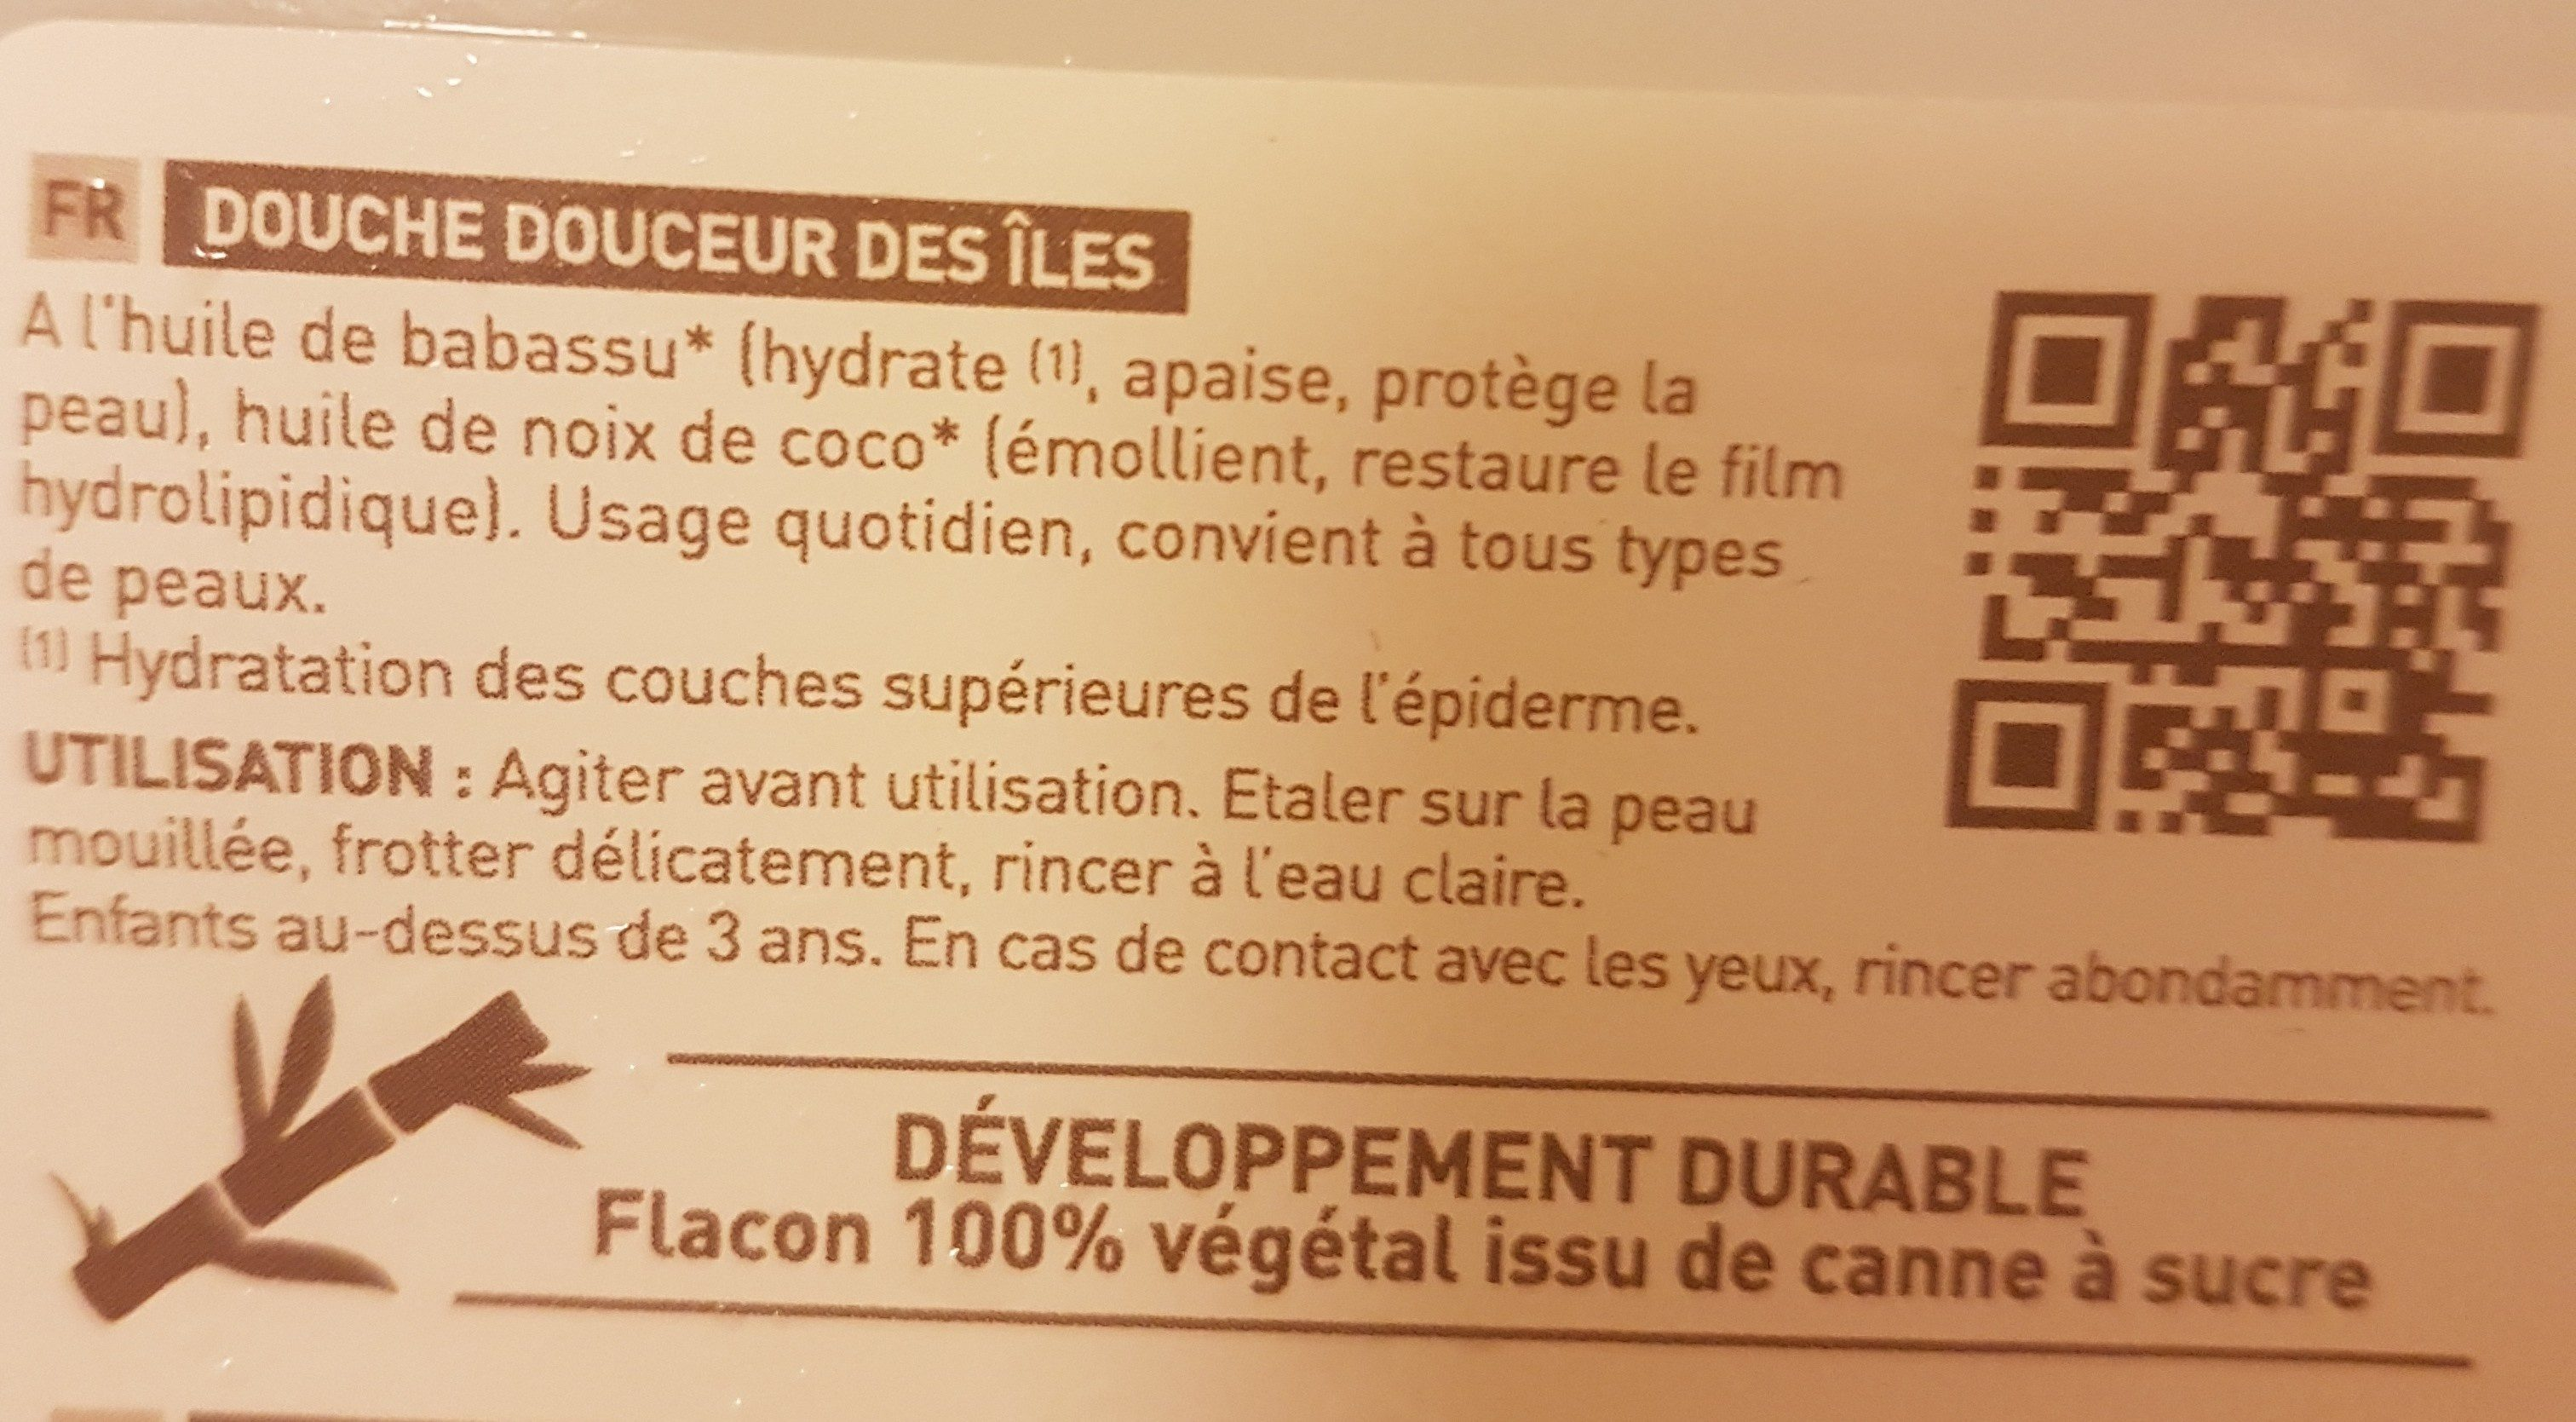 Douche Douceur Des Iles - 1L - Douce Nature - Ingredients - fr